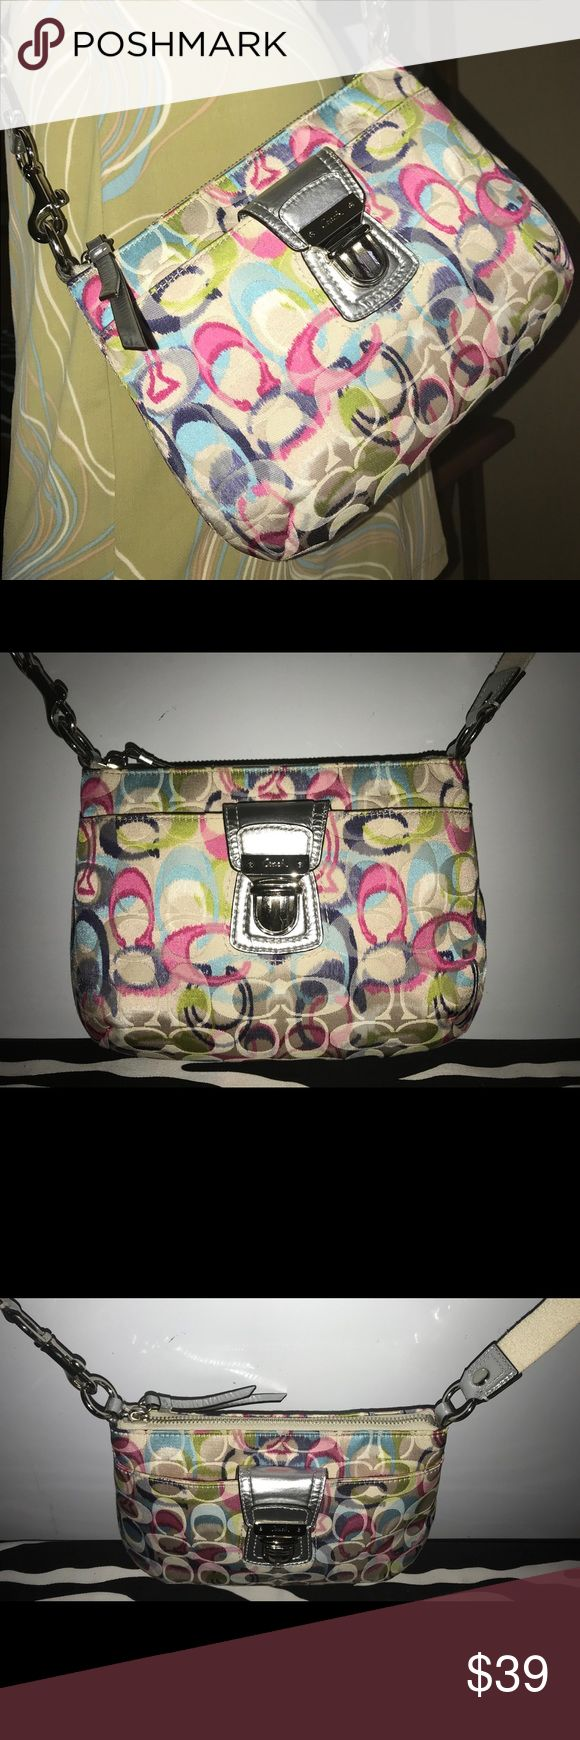 Auth Coach Poppy Signature Multicolor XBody  Bag Stylish Authentic Coach Swingpack Crossbody Multicolor Bag In Good Condition   • Extra Long Swingpack Strap  • Silver Leather Details  • Buckle Closure • Silver Hardware  • Signs Of Wear  • Soiled Exterior & Interior • Reasonable Offers Welcome  • Satisfaction Guaranteed Coach Bags Crossbody Bags